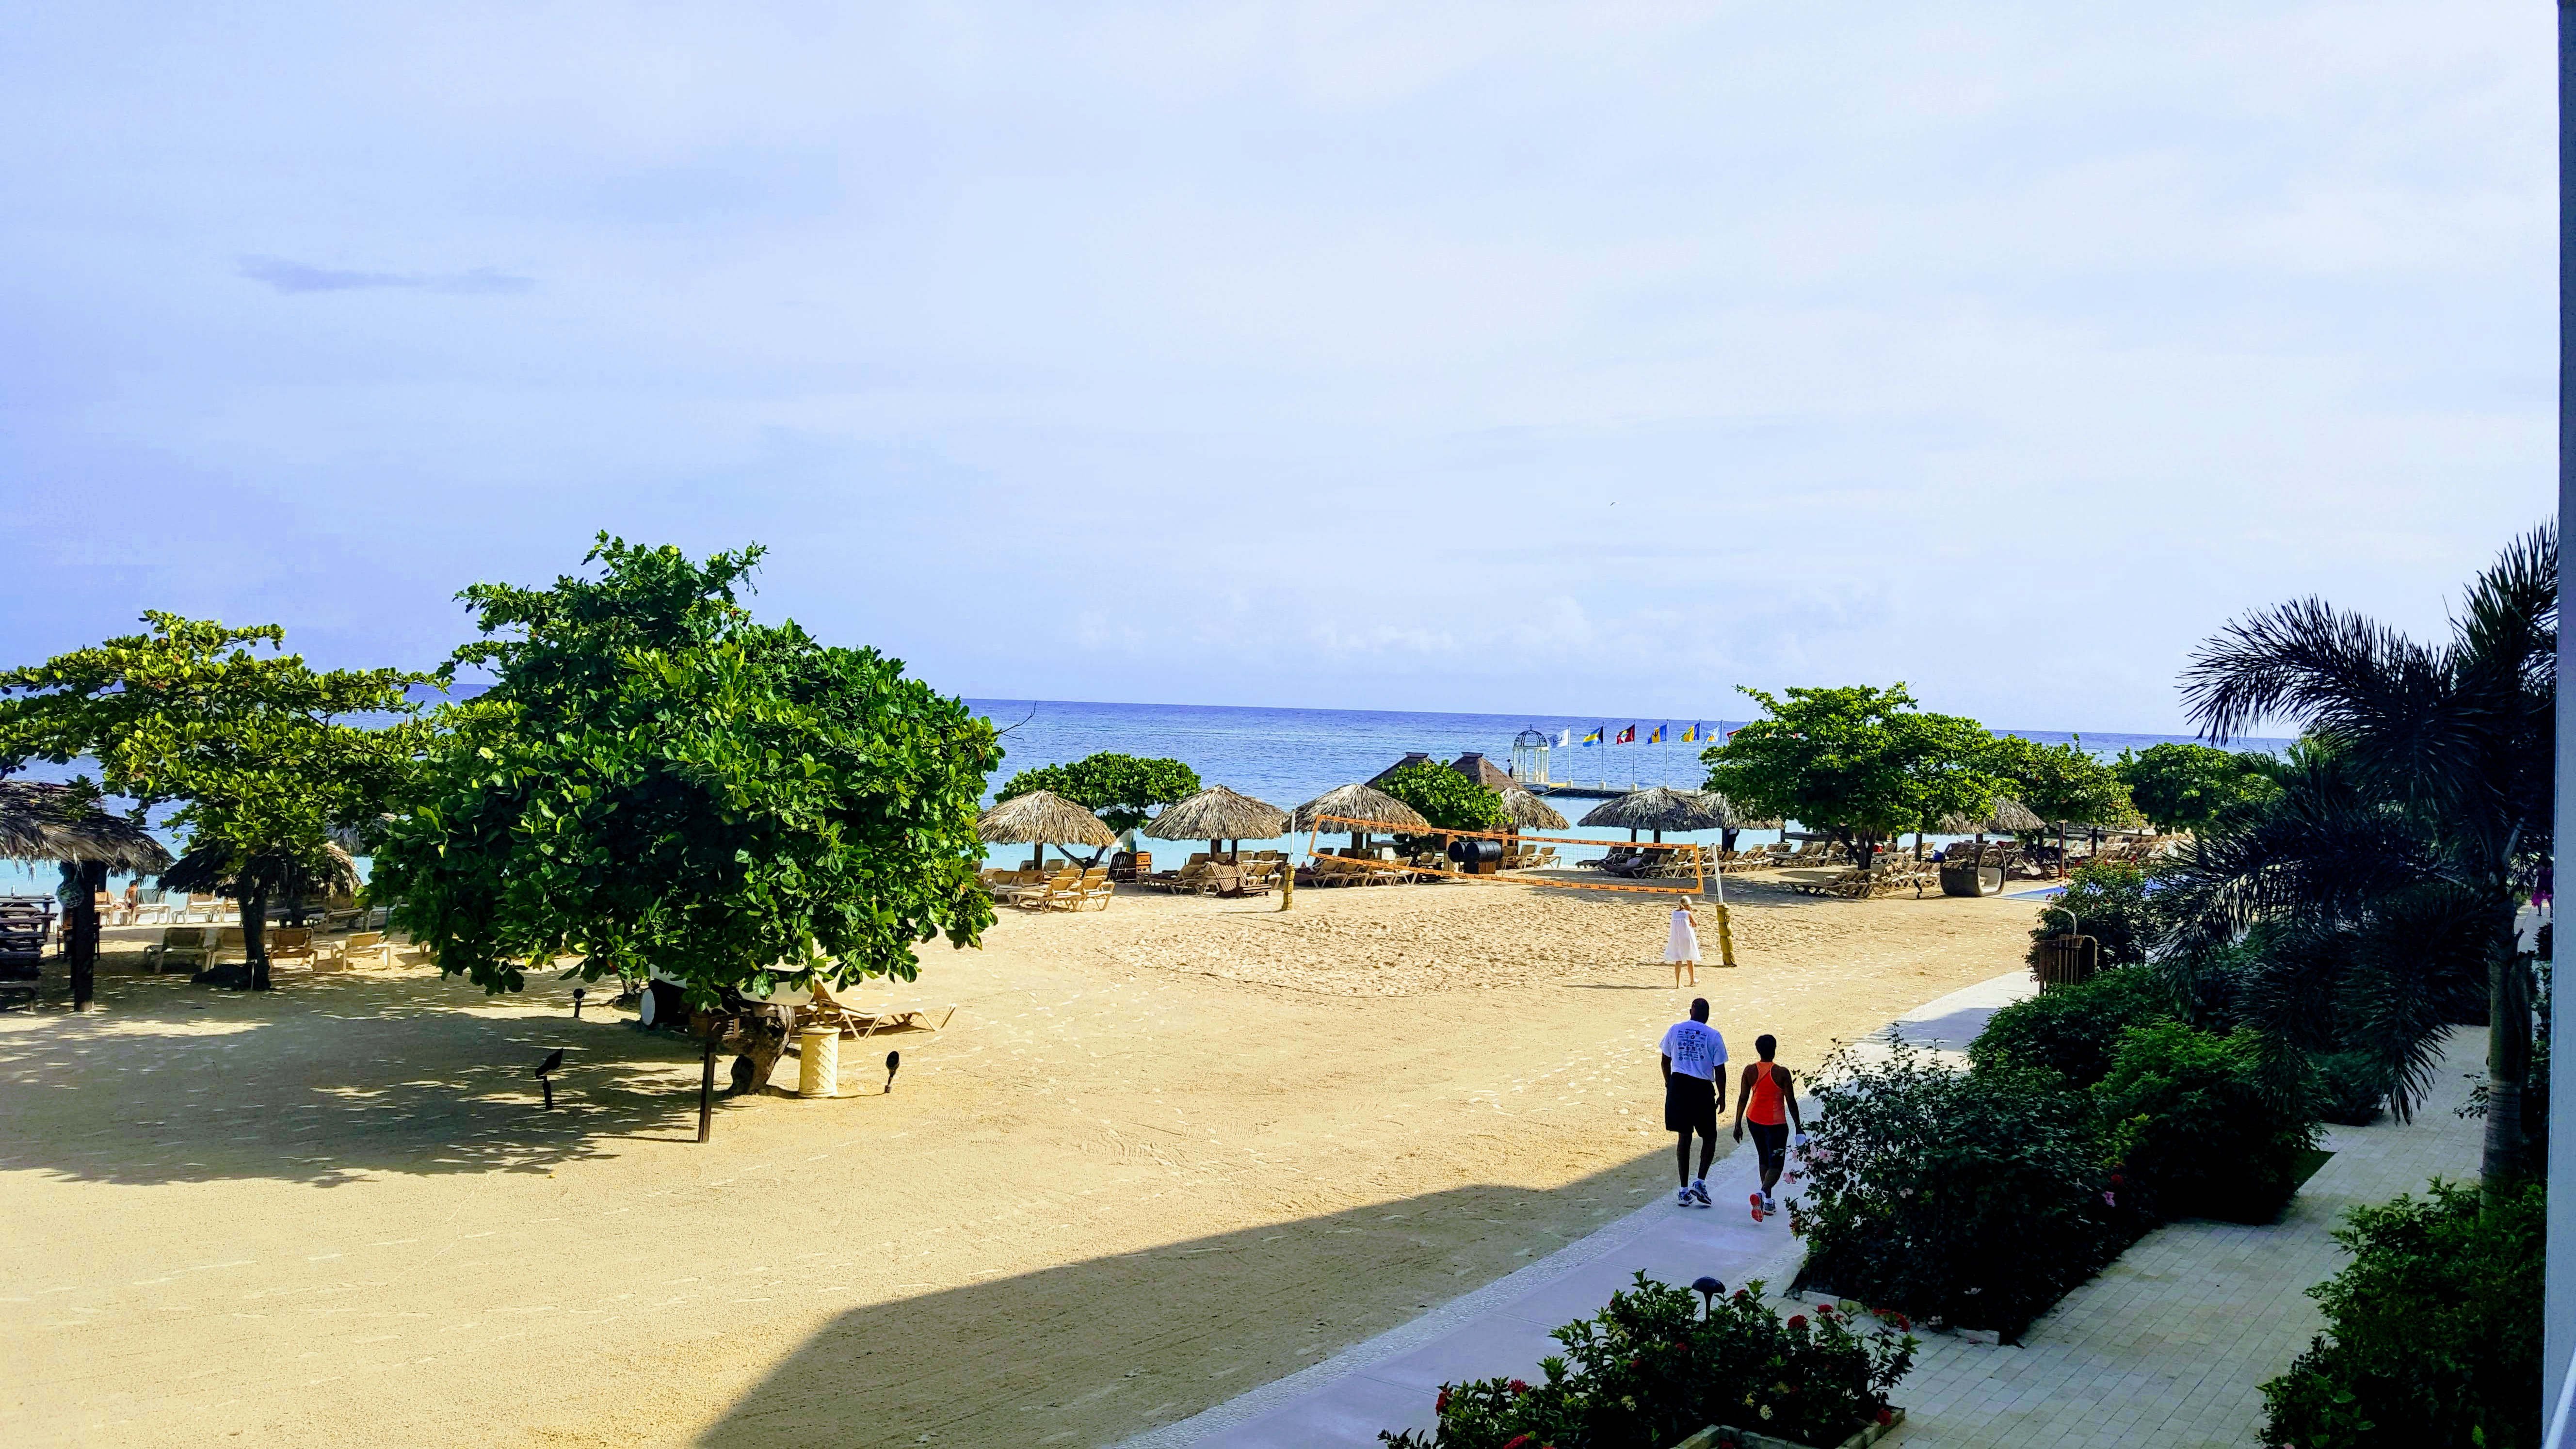 View of beach from Palms building Sandals Montego Bay